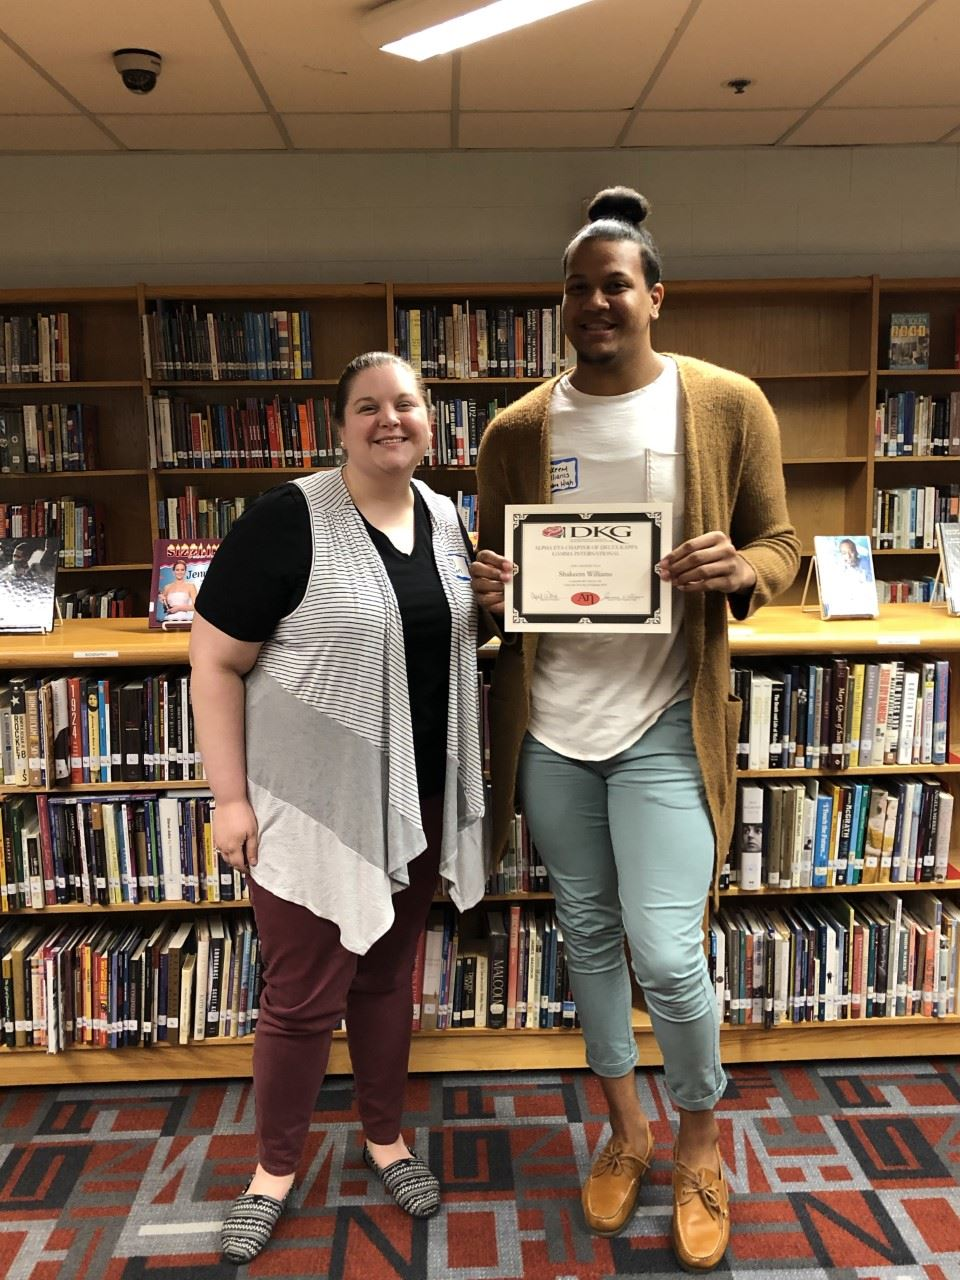 Shakeem Williams, Teacher Cadet and aspiring dance teacher, recieved the Alpha Eta Chapter of Delta Kappa Gamma grant for future teachers.